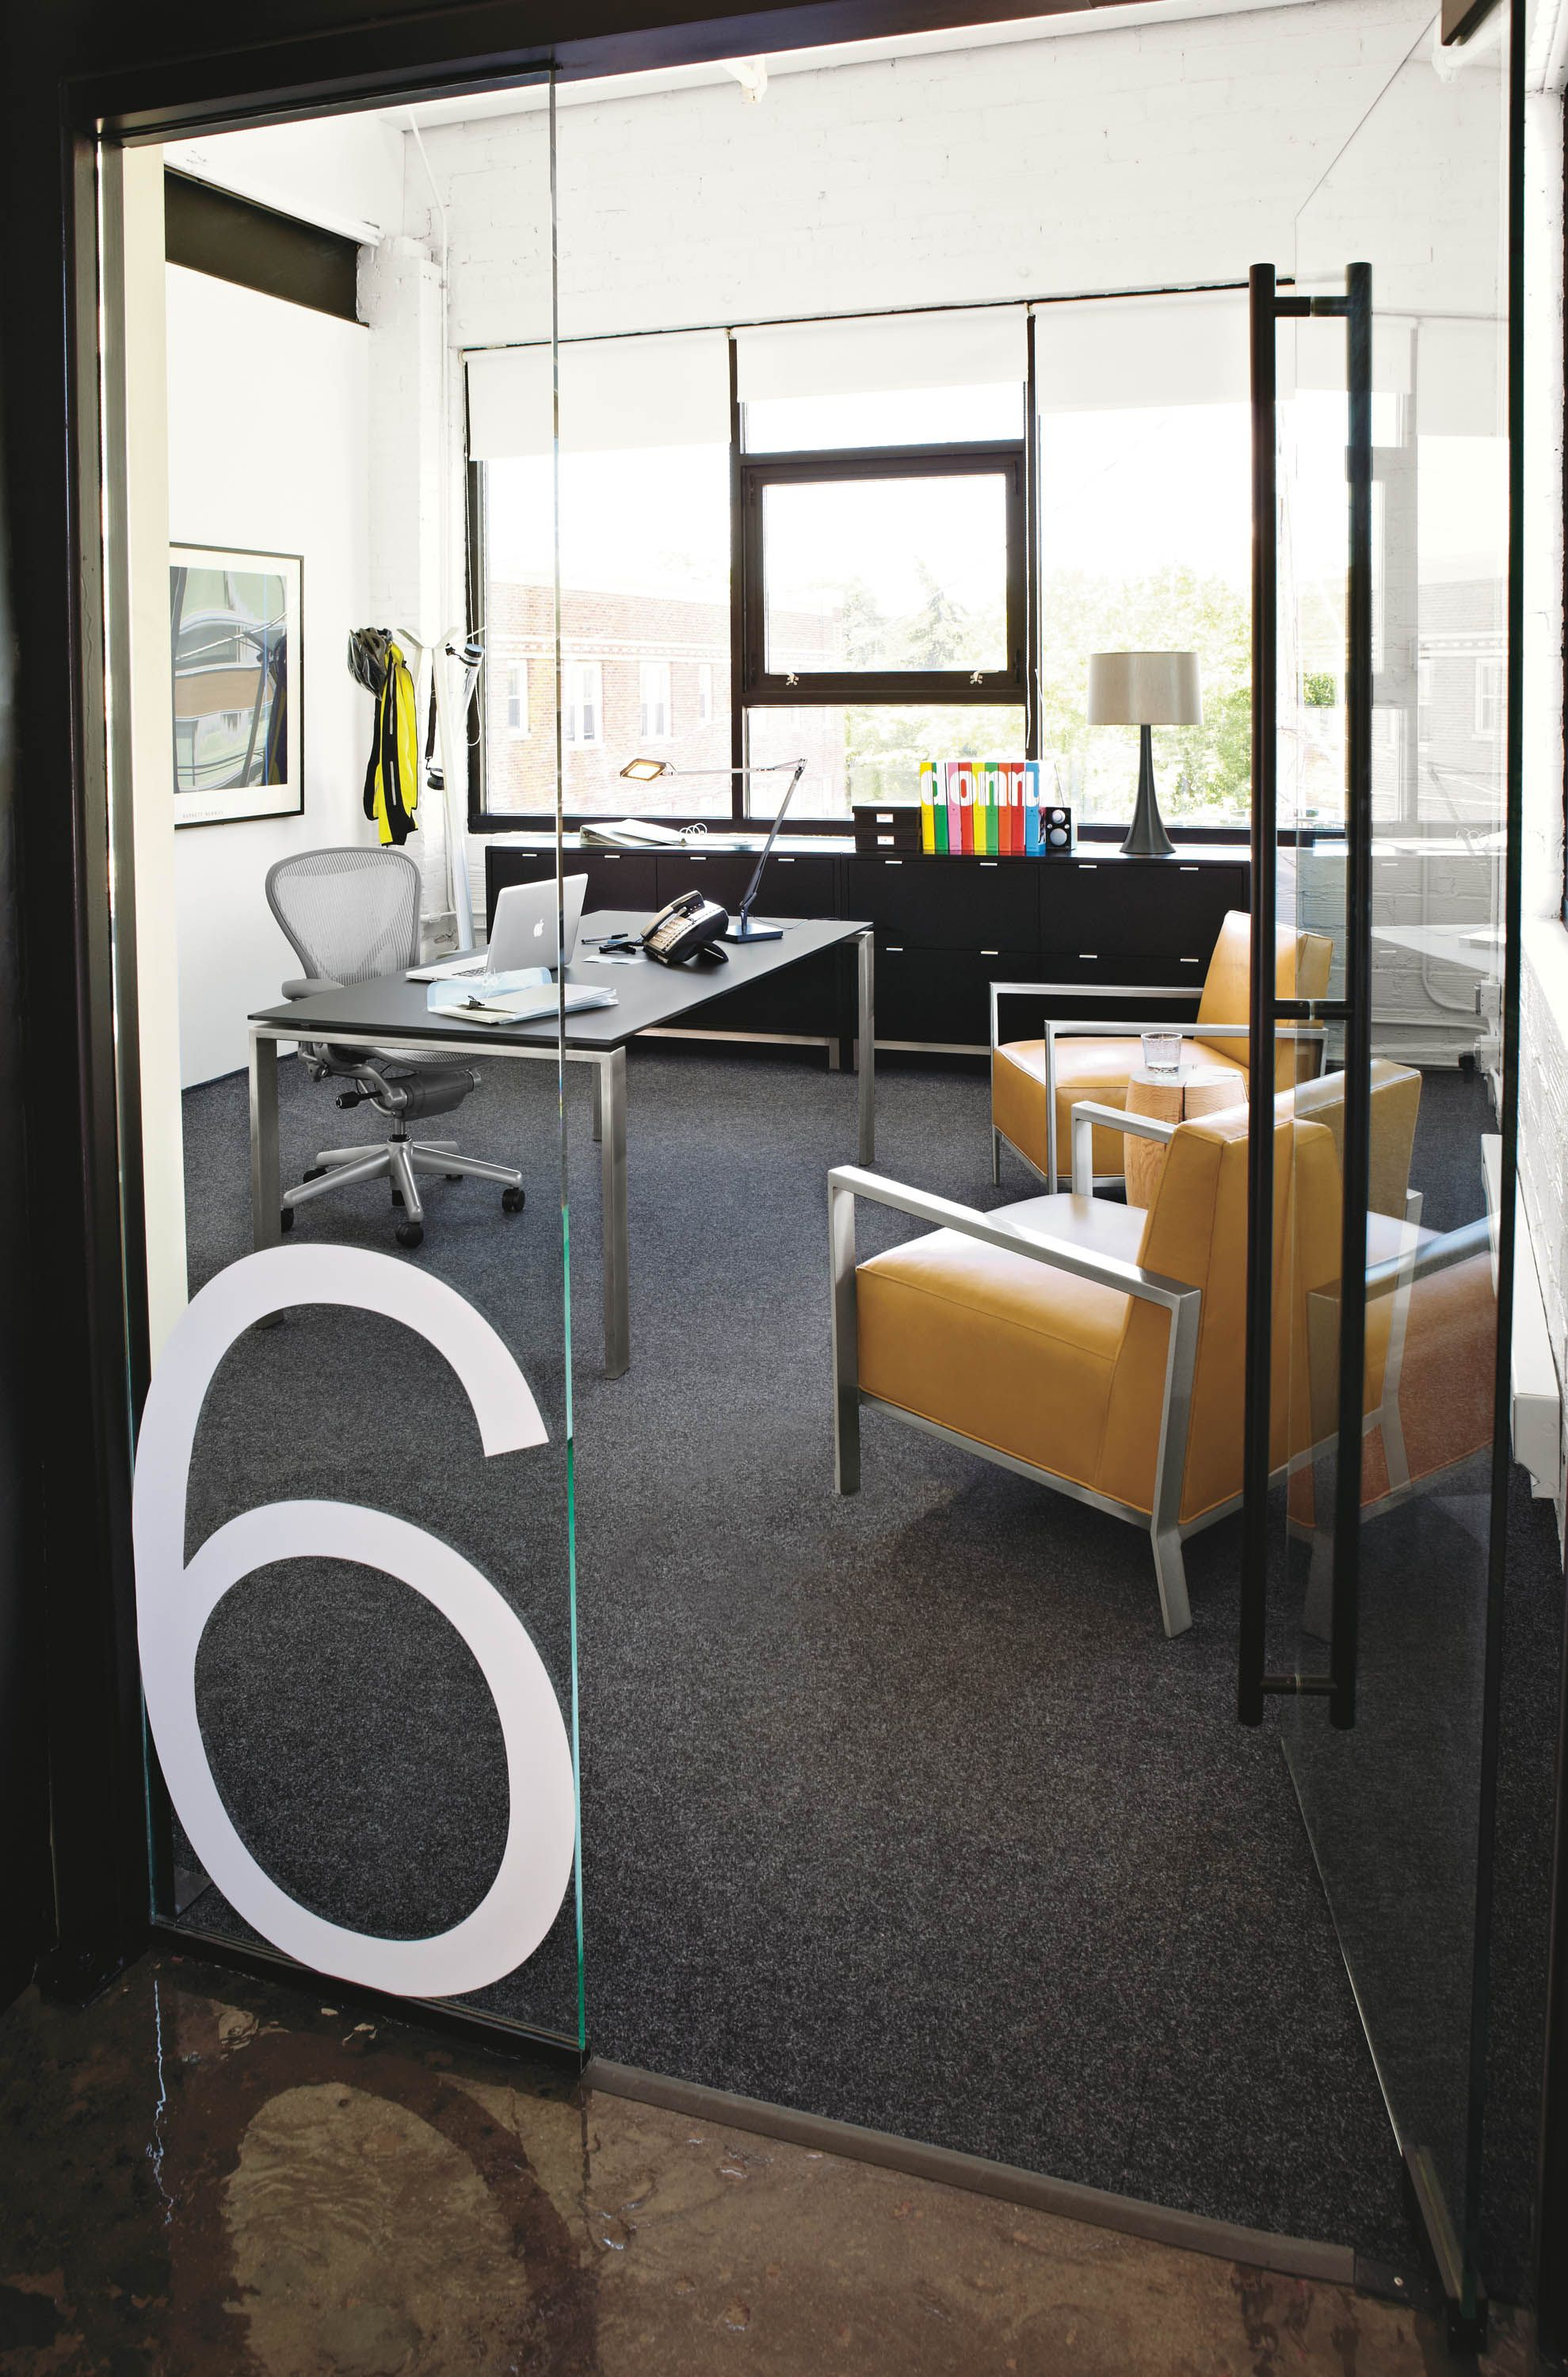 Graphics On The Glass Walls Numbered Offices Easier To Locate Name Meeting Spaces Label Accordingly